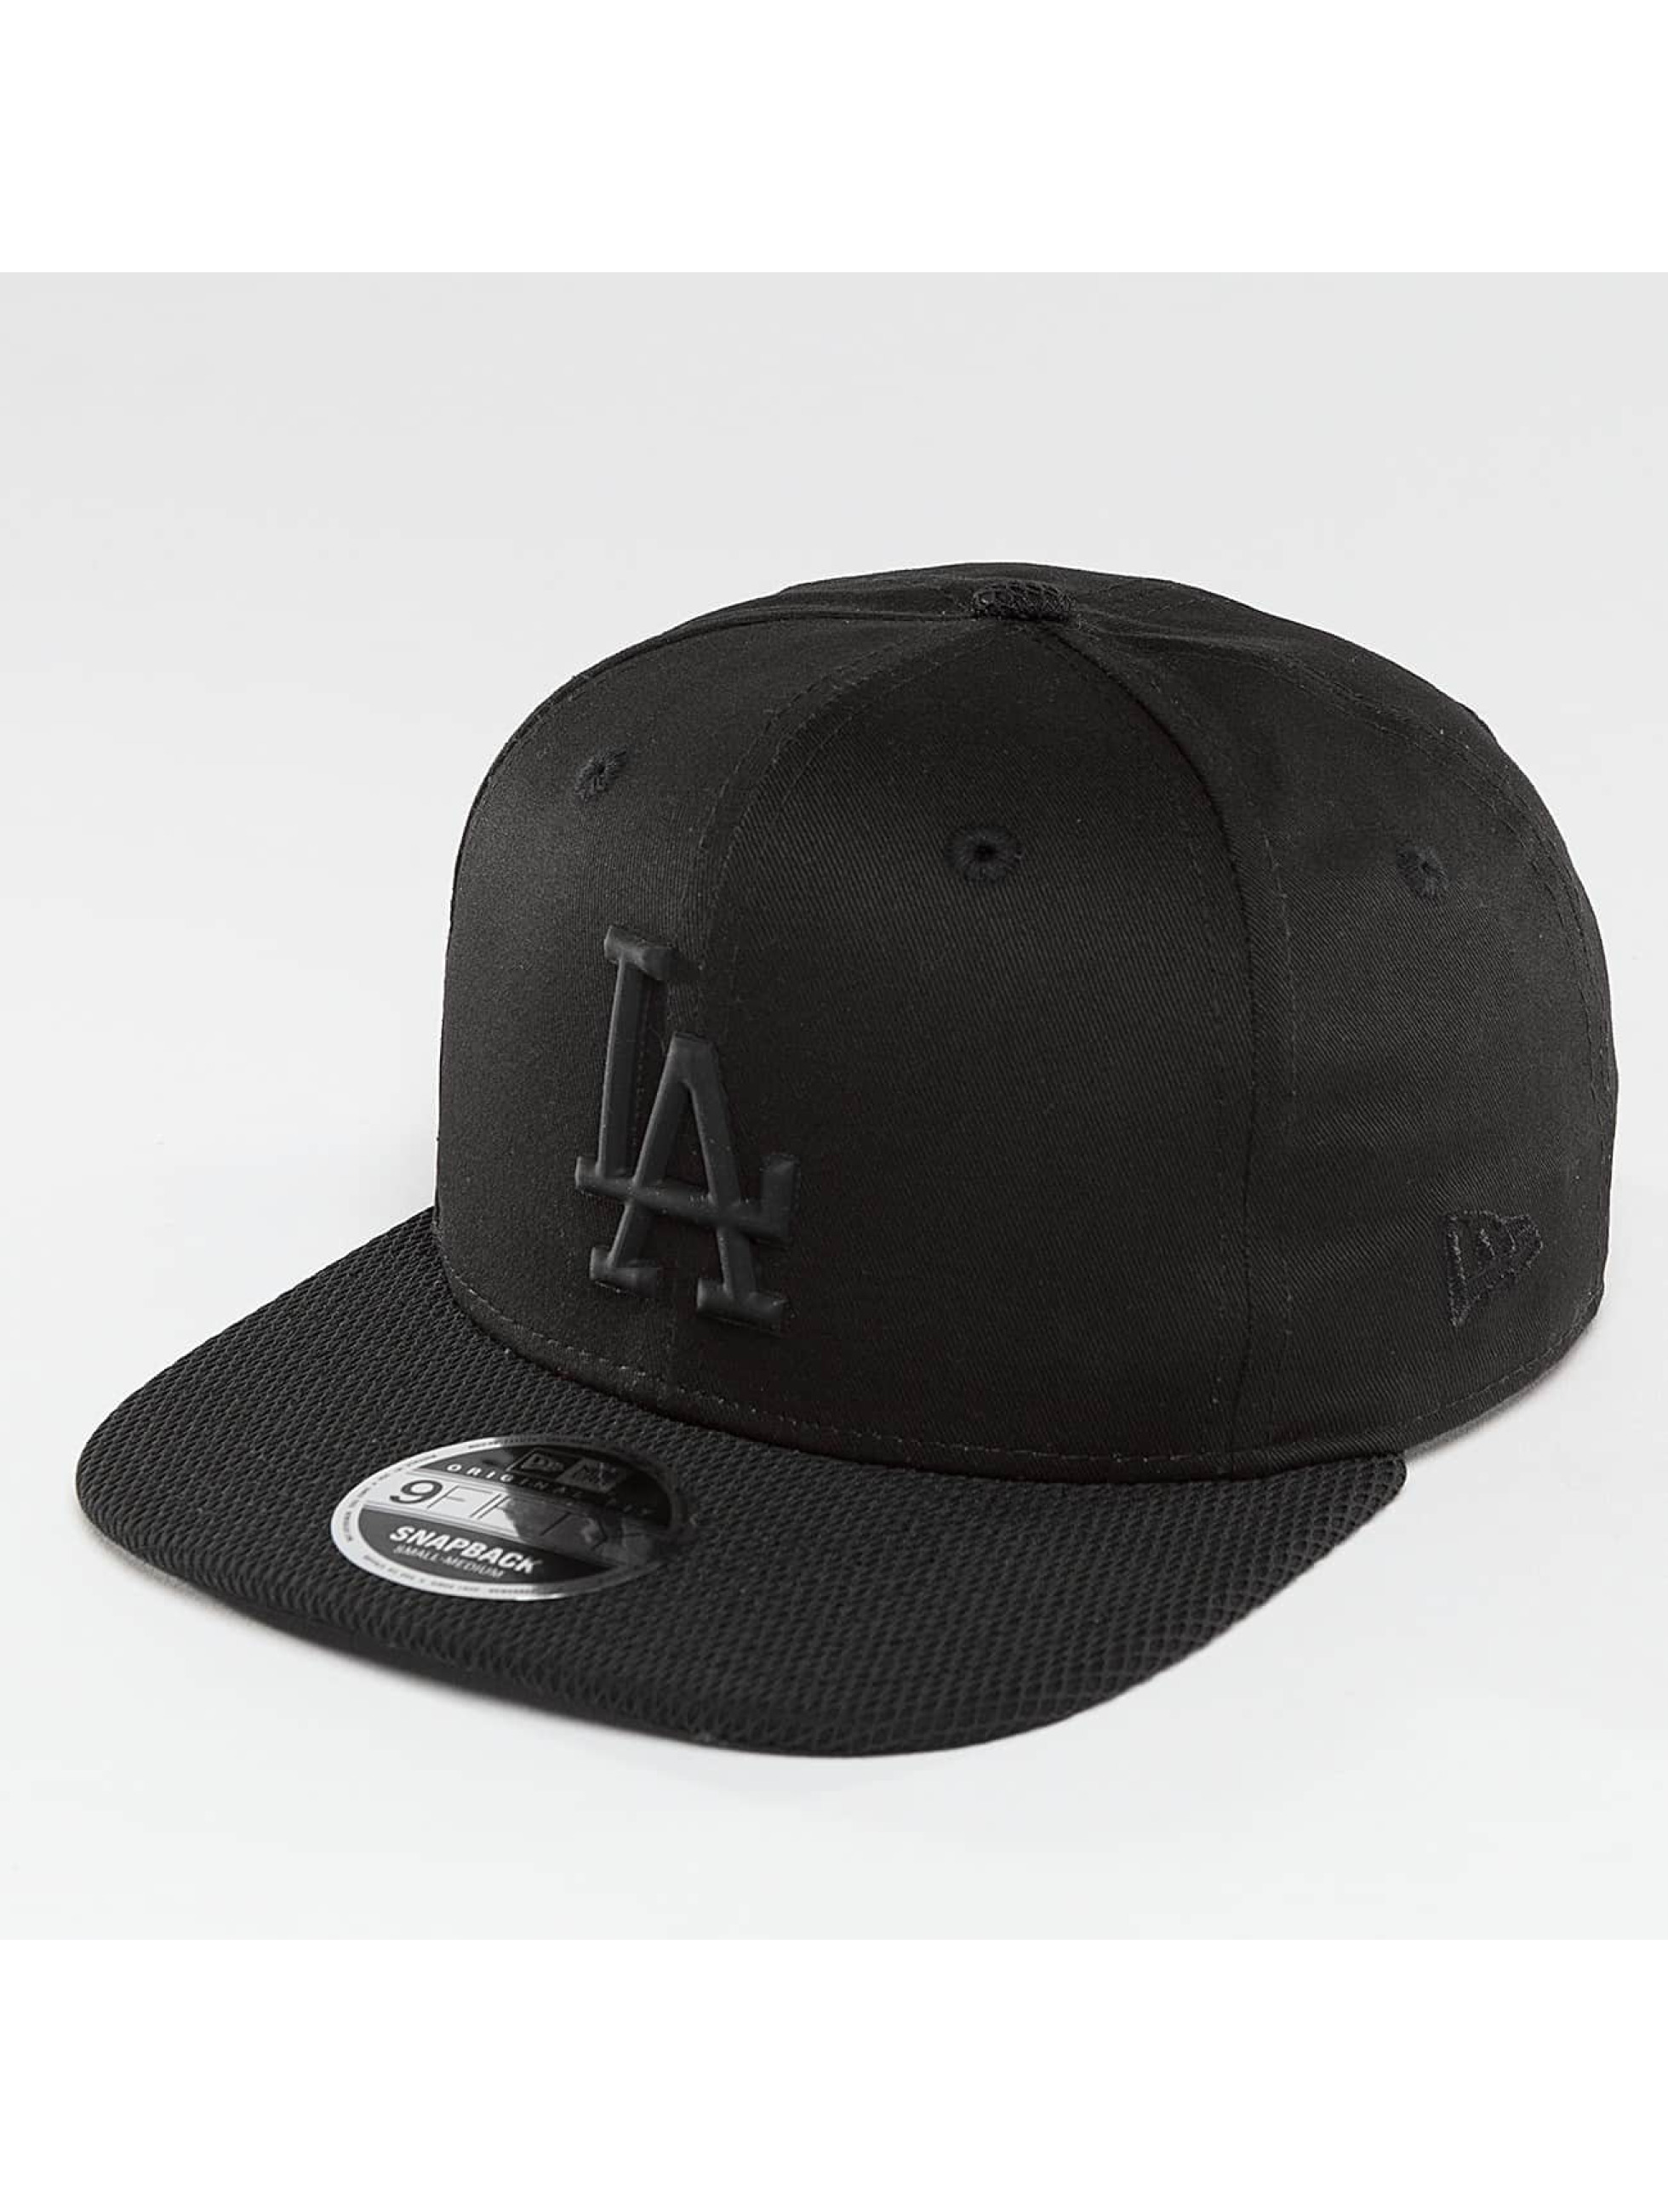 New Era Fitted Cap Rubber Prime LA Dodgers black